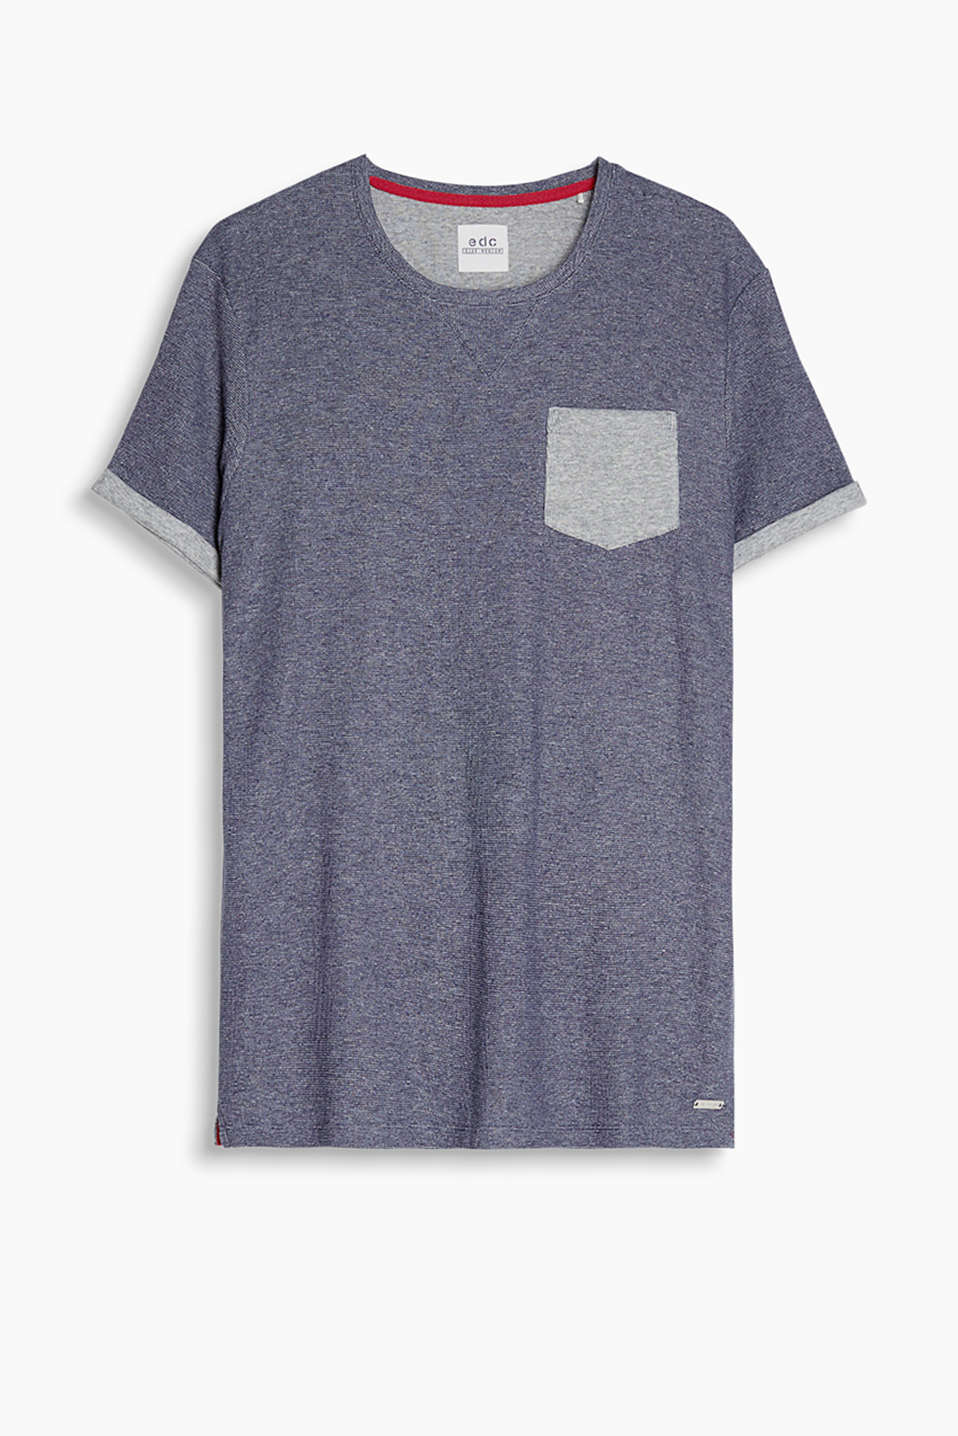 T-shirt made of waffle piqué fabric with a ribbed breast pocket and fixed turn-ups on the sleeves